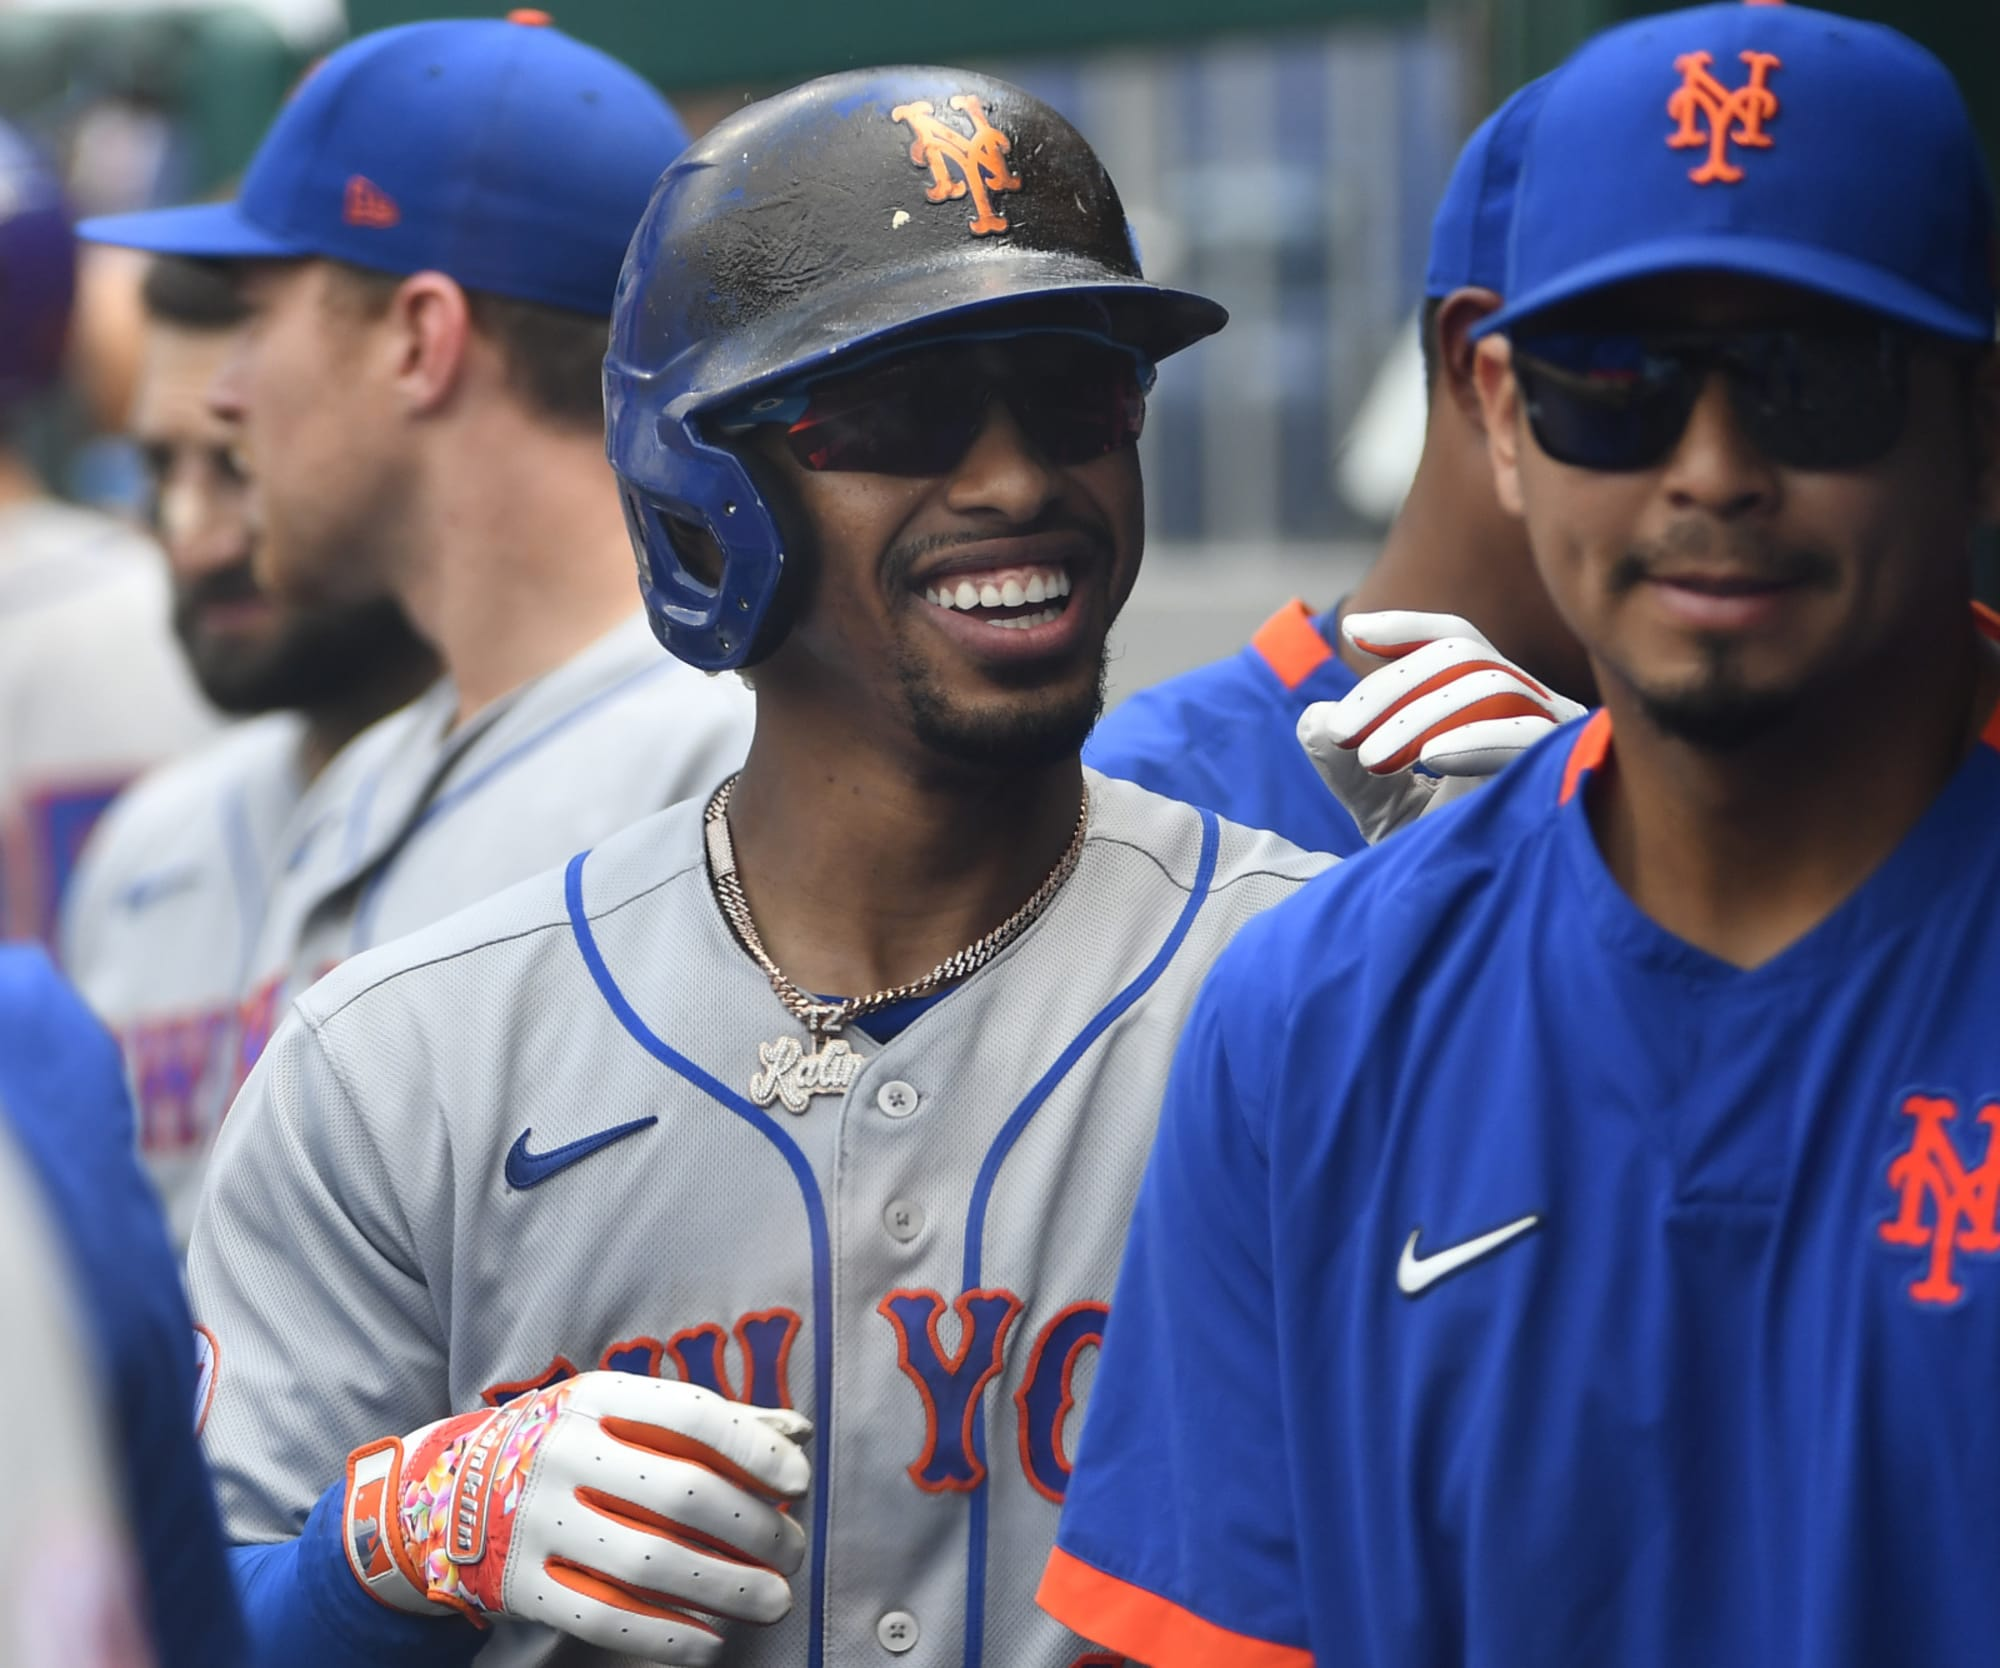 Mets savage the Nationals on Twitter after Francisco Lindor smashes 2 homers